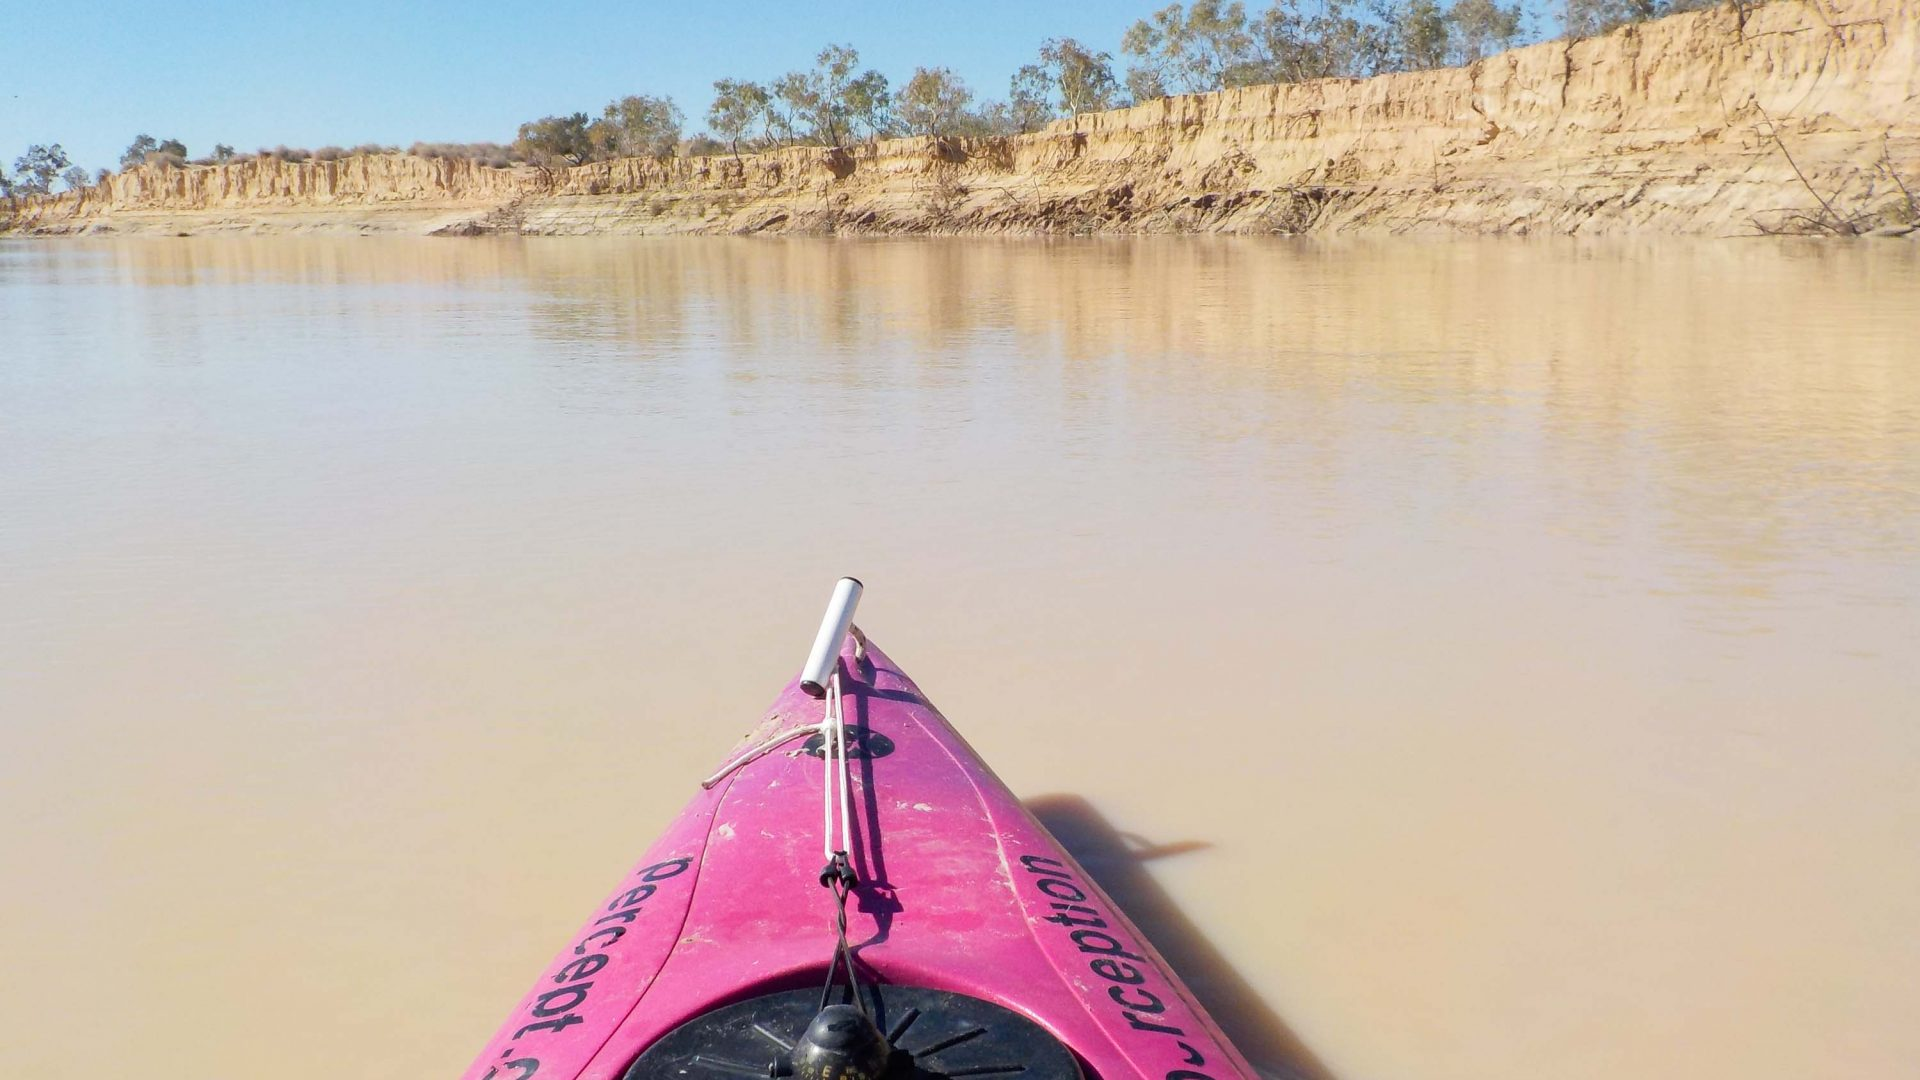 The front of Huy's kayak can be seen, along with the sand cliffs along the Warburton River in South Australia.